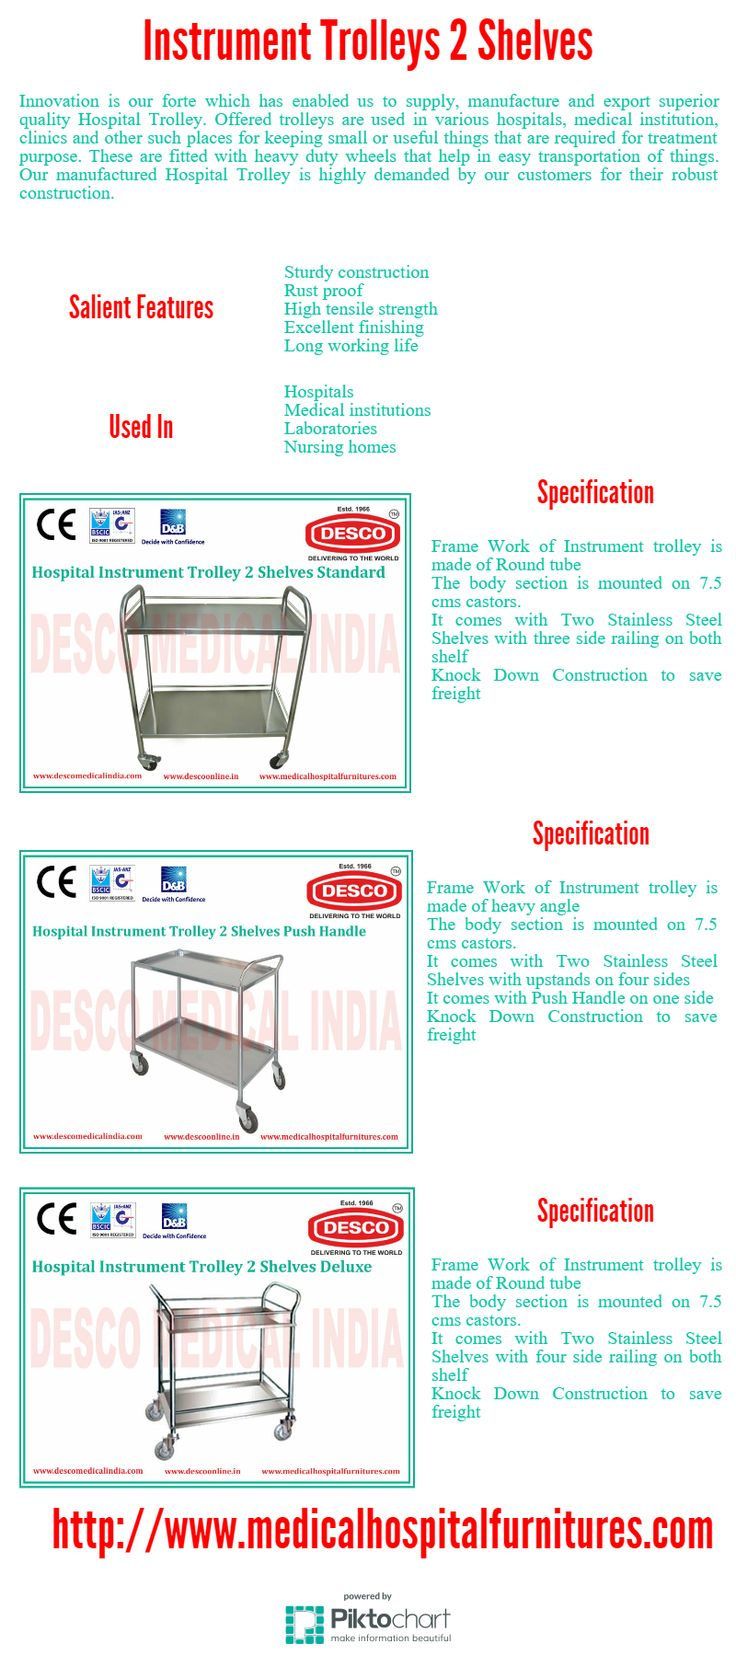 Innovation is our forte which has enabled us to supply, manufacture and export superior quality Hospital Trolley.